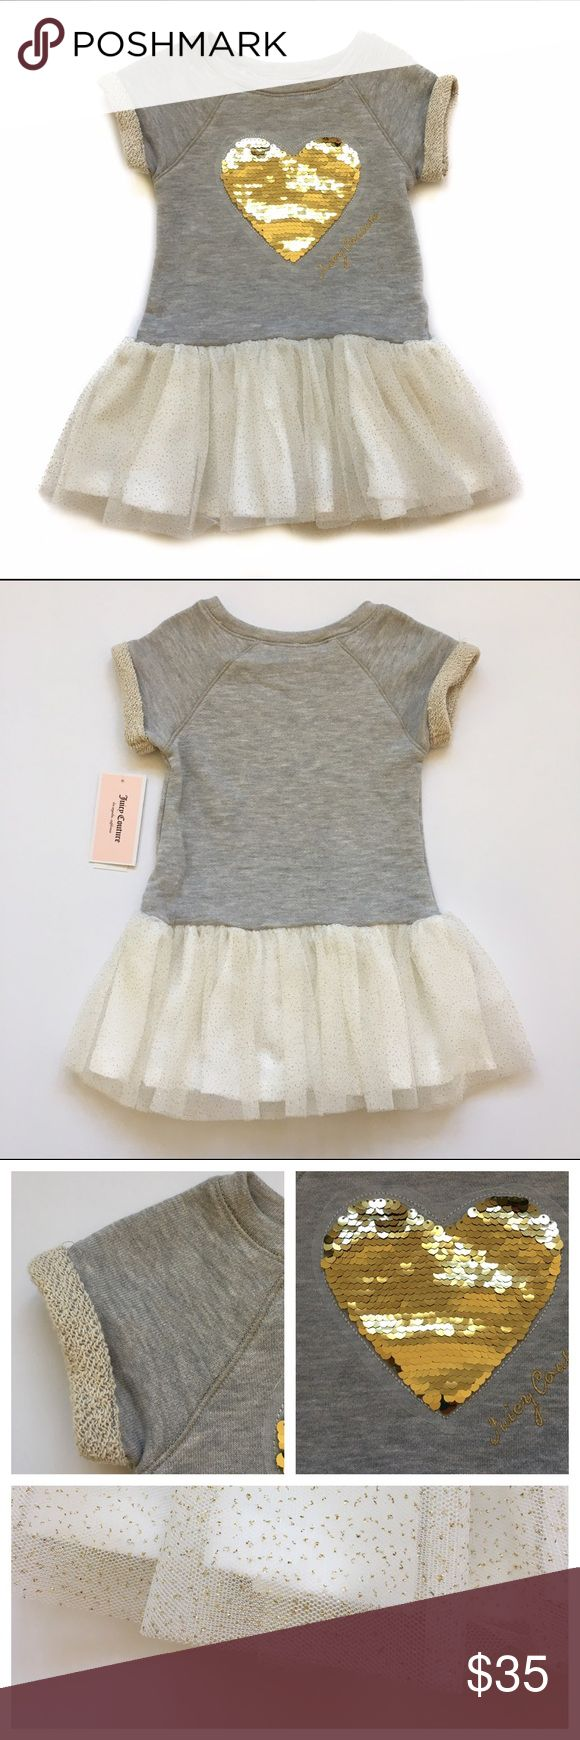 """Juicy Couture Tulle & Sequin Dress New with tags. Gray sweatshirt like material on the top with a large heart of gold mermaid sequins and """"Juicy Couture"""" embroidered beside it in gold. Full lined drop waist skirt of ivory tulle with gold dots. Matching ivory diaper cover/ bloomers. Juicy Couture Dresses Casual"""